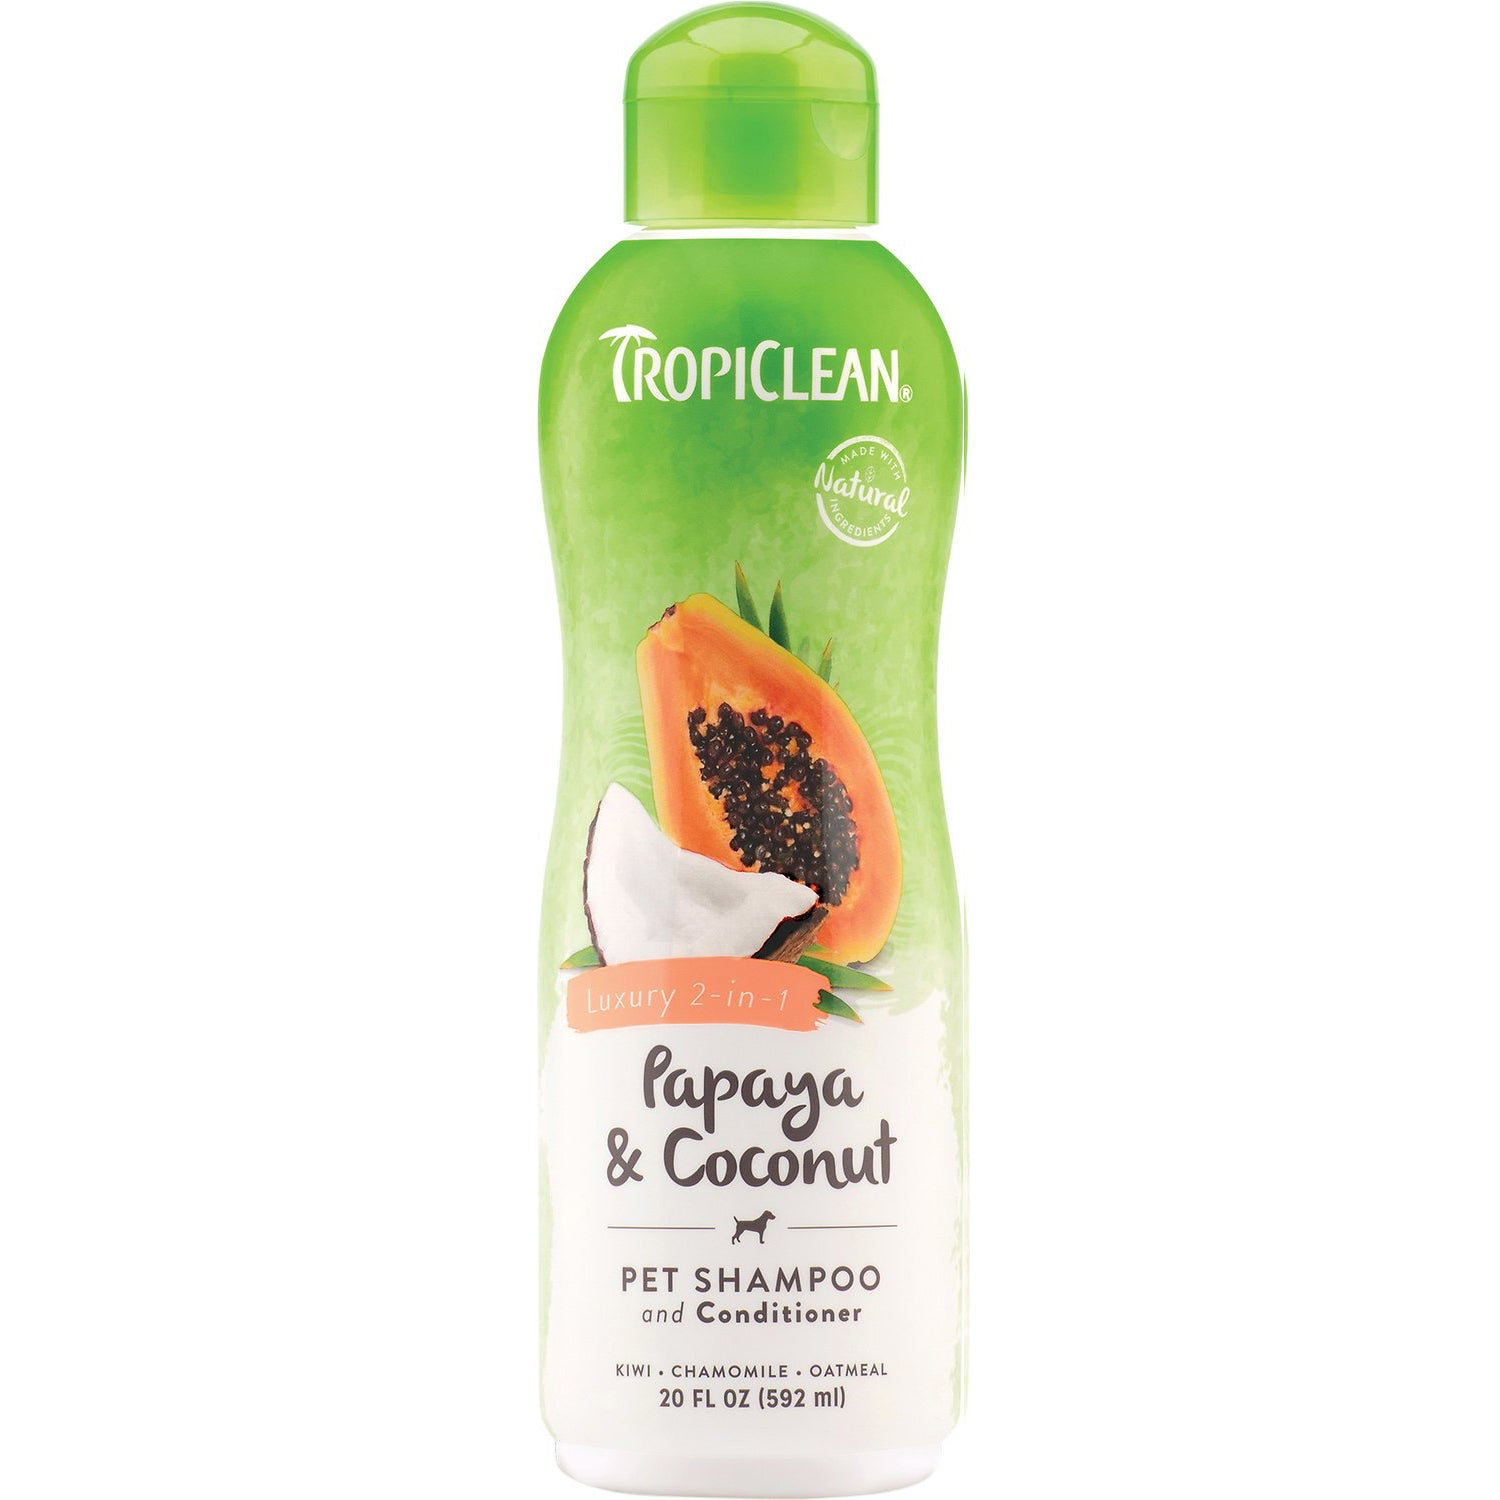 TropiClean Shampoo & Conditioner Papaya & Coconut Luxury 2-in-1 Cleansing Formula for Dog & Cat